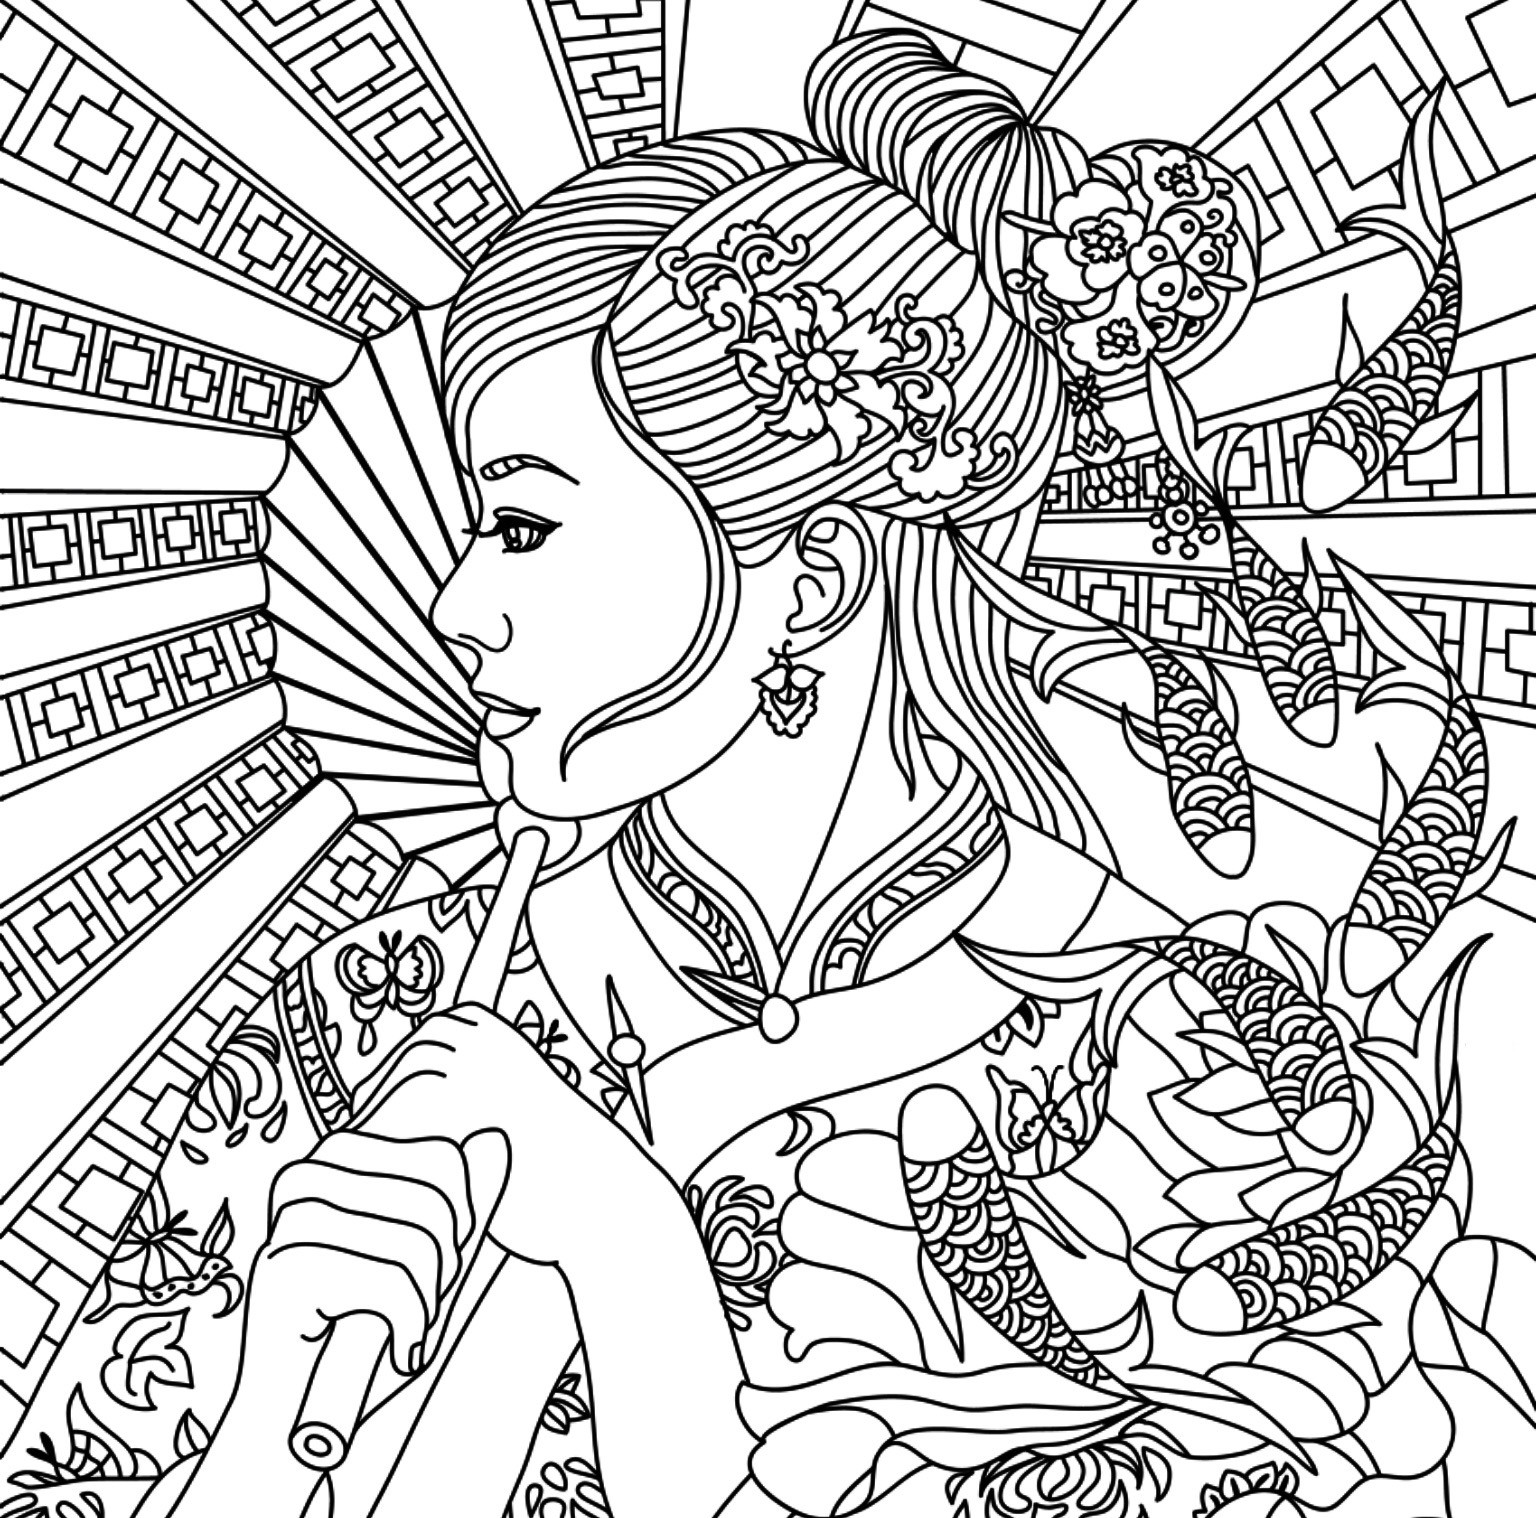 1536x1518 Koi Coloring Pages For Adults Printable Download Koi Fish